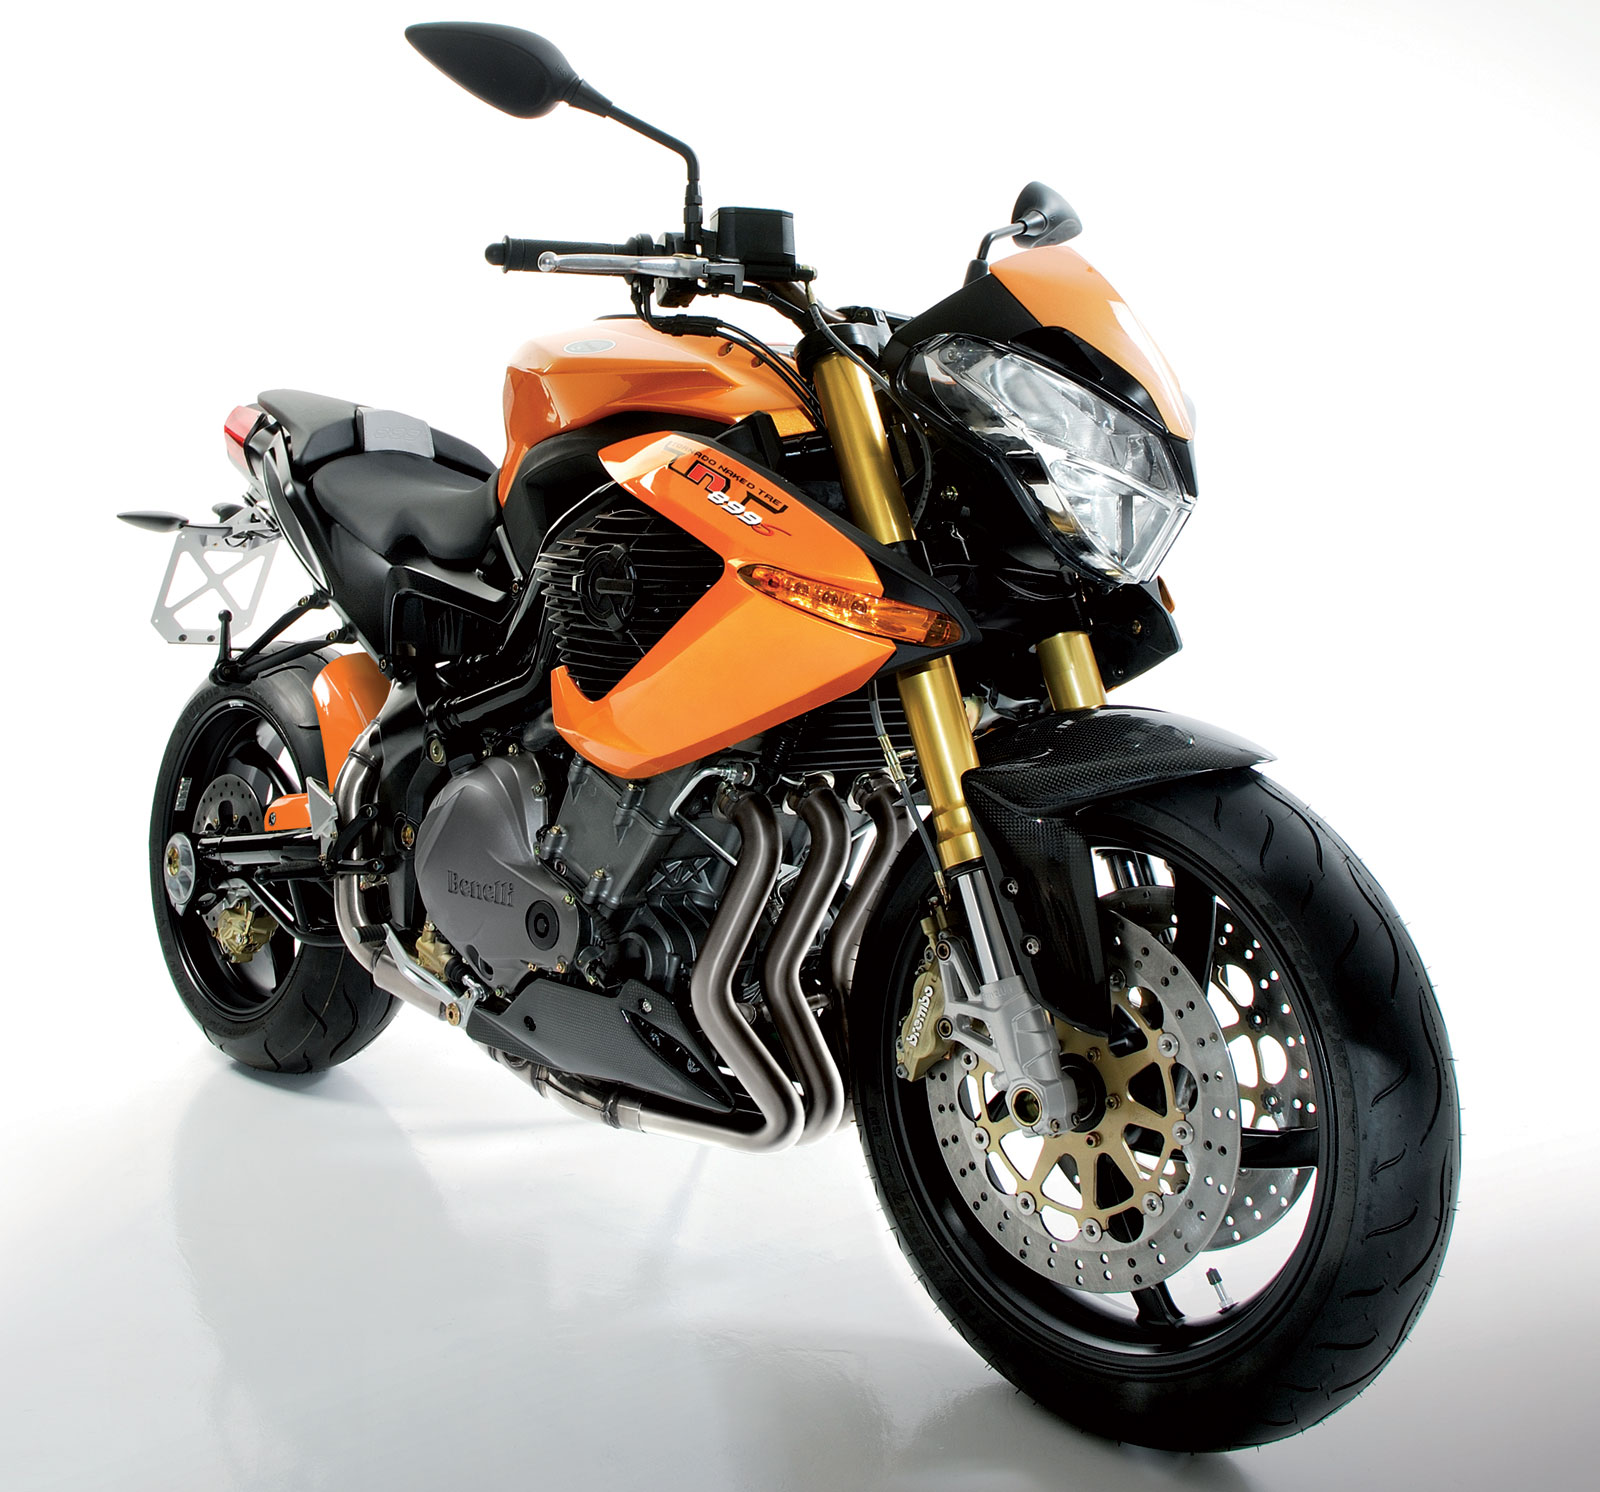 Benelli Tornado Naked Tre 899 s #3